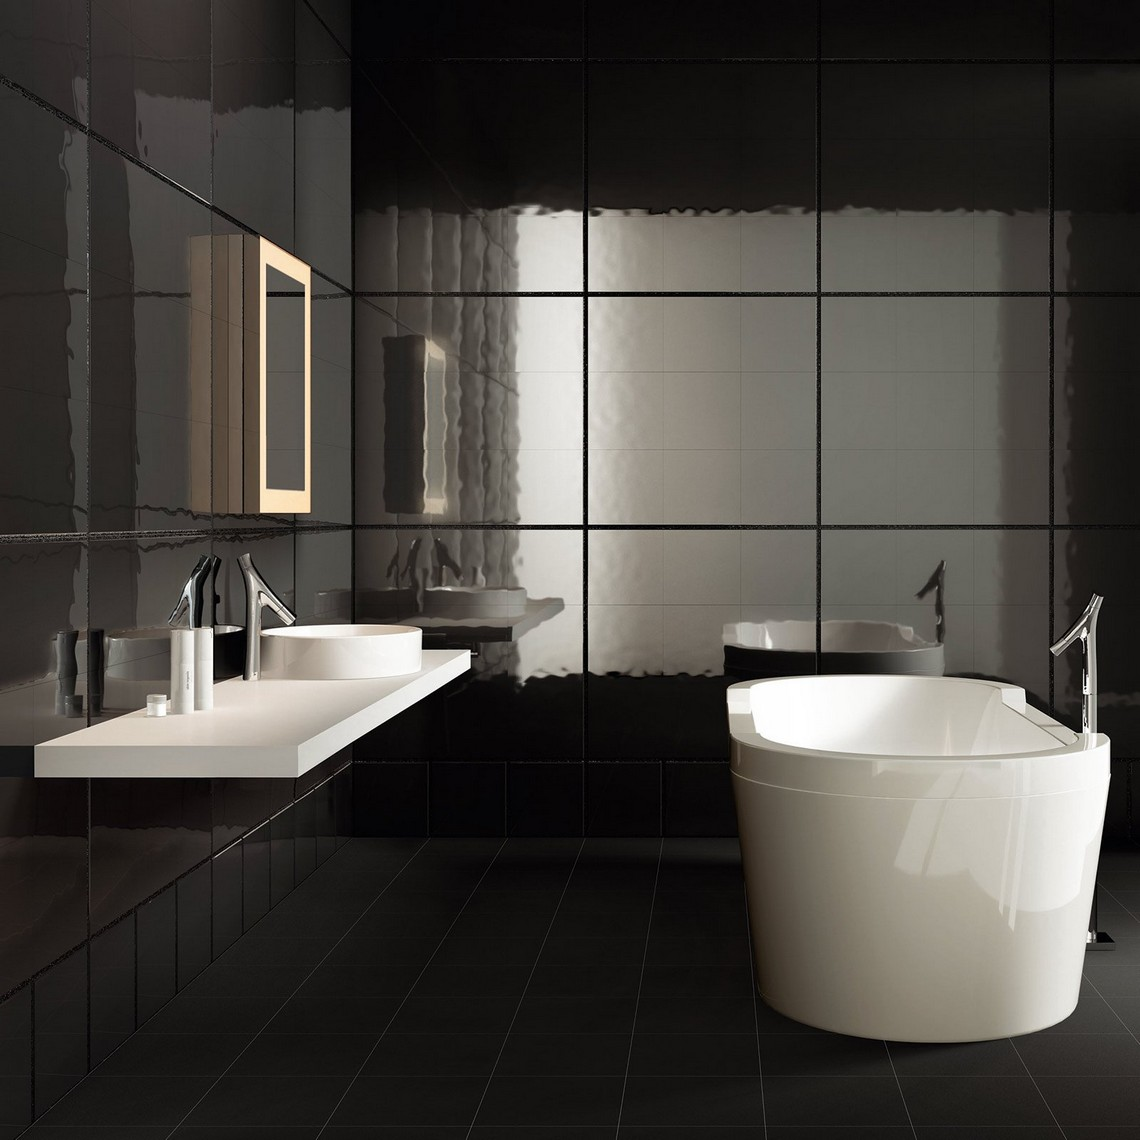 Interior Design Trends For 2019 interior design Interior Design Trends For 2019 bold black bathrooms